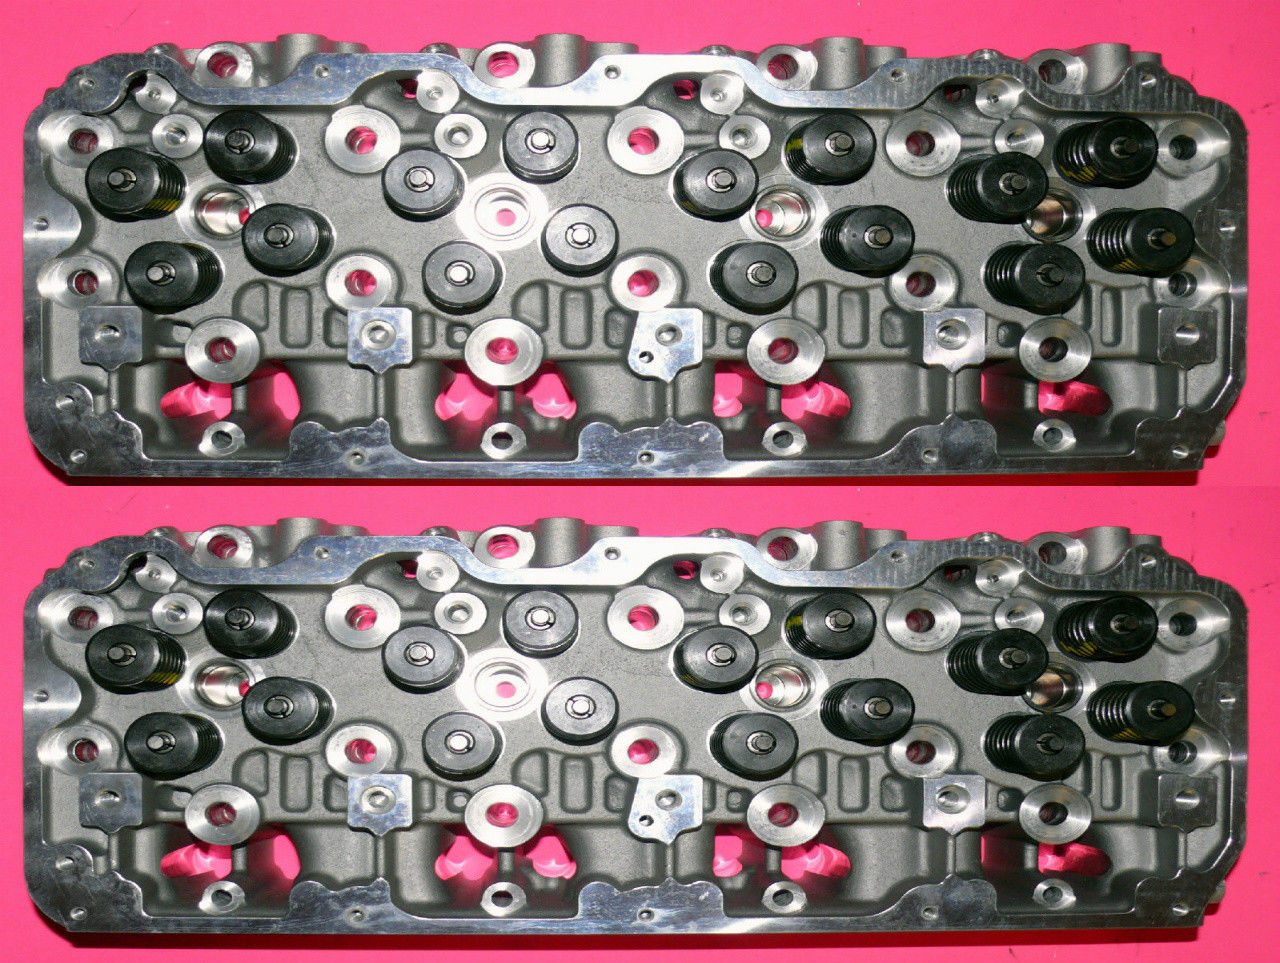 NEW 2 GM CHEVROLET DURAMAX 6.6 LB7 SEL CYLINDER HEADS 2001-2004.5 NO Aftermarket Jeep Cylinder Head on